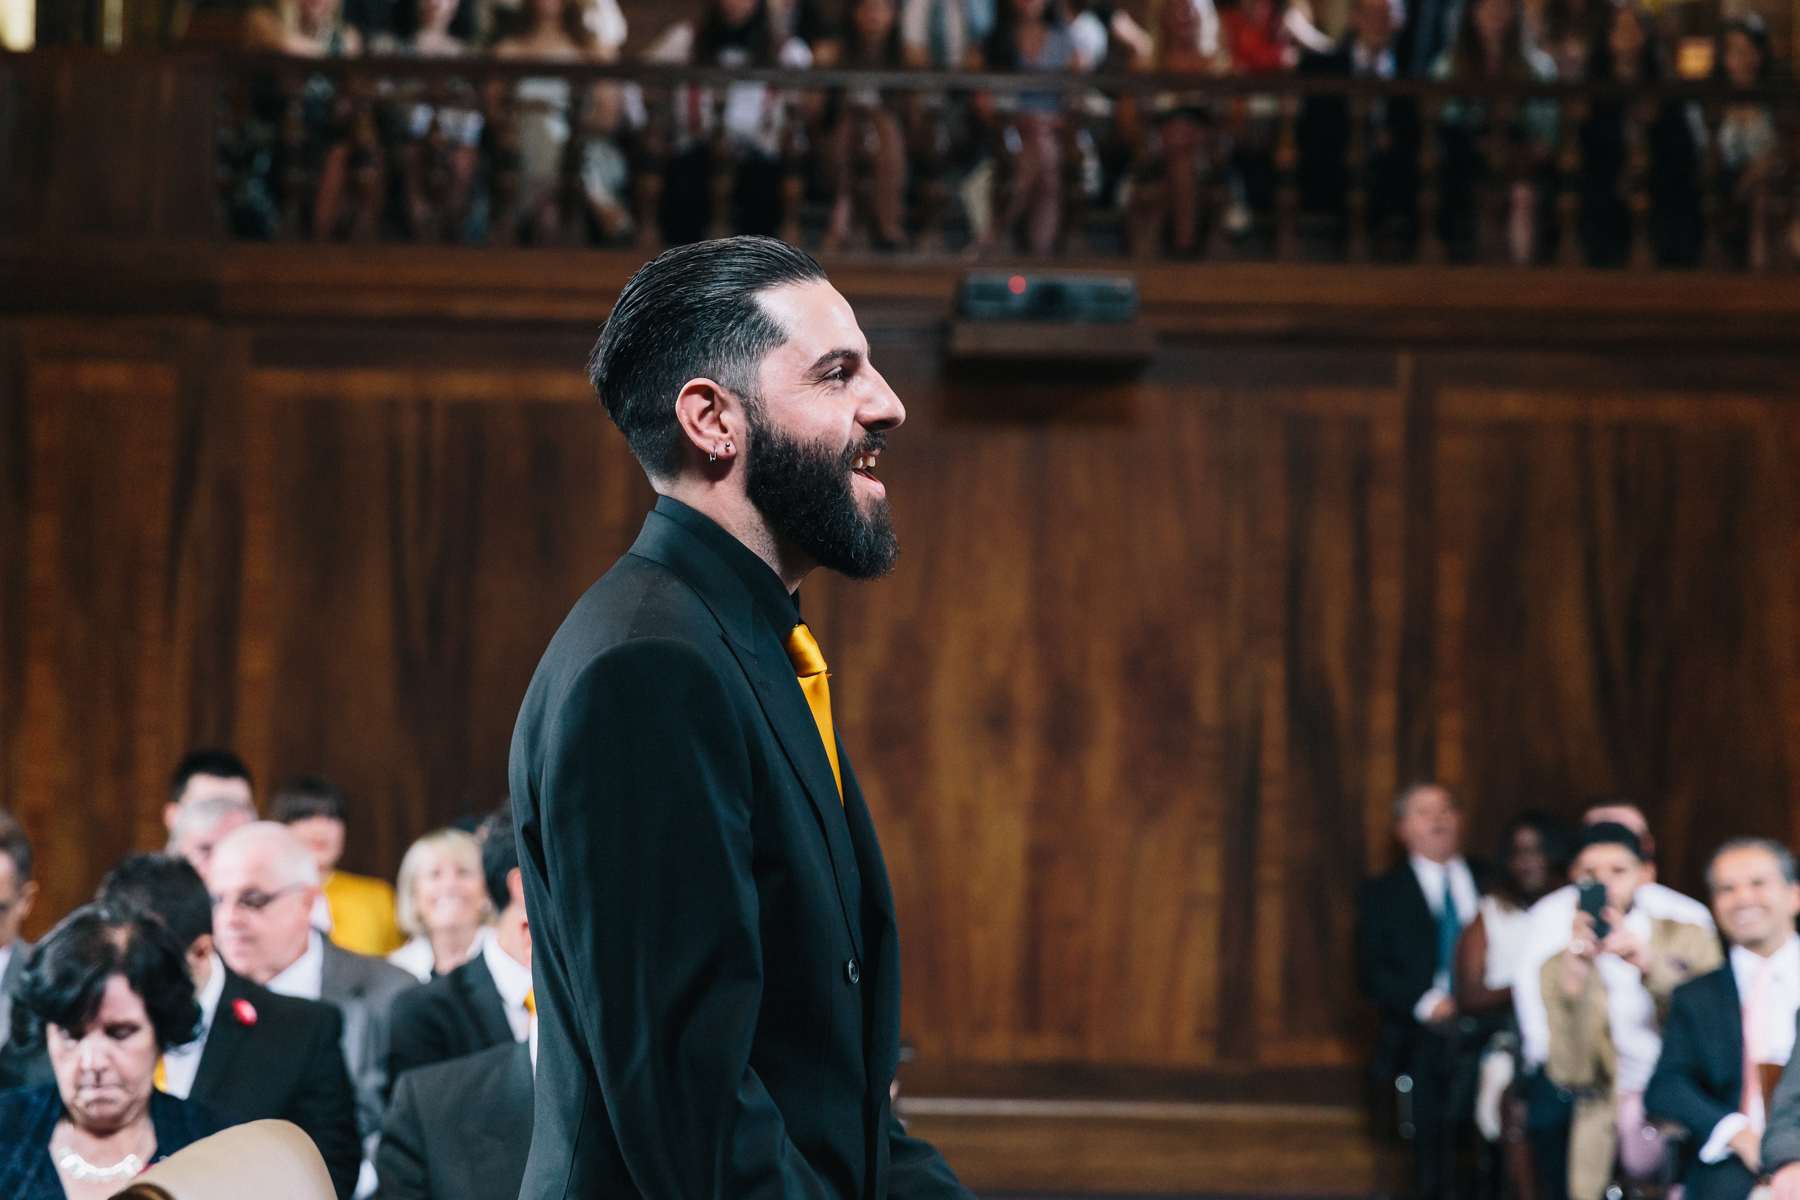 STOKE NEWINGTON TOWN HALL WEDDING-14